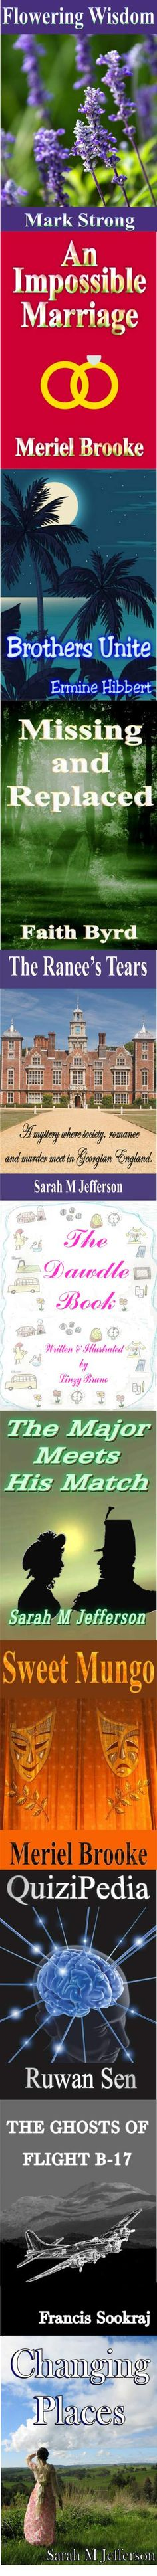 A variety of books for adults and children from Ex-L-Ence Publishing http://qtvh.com/yourls/bo